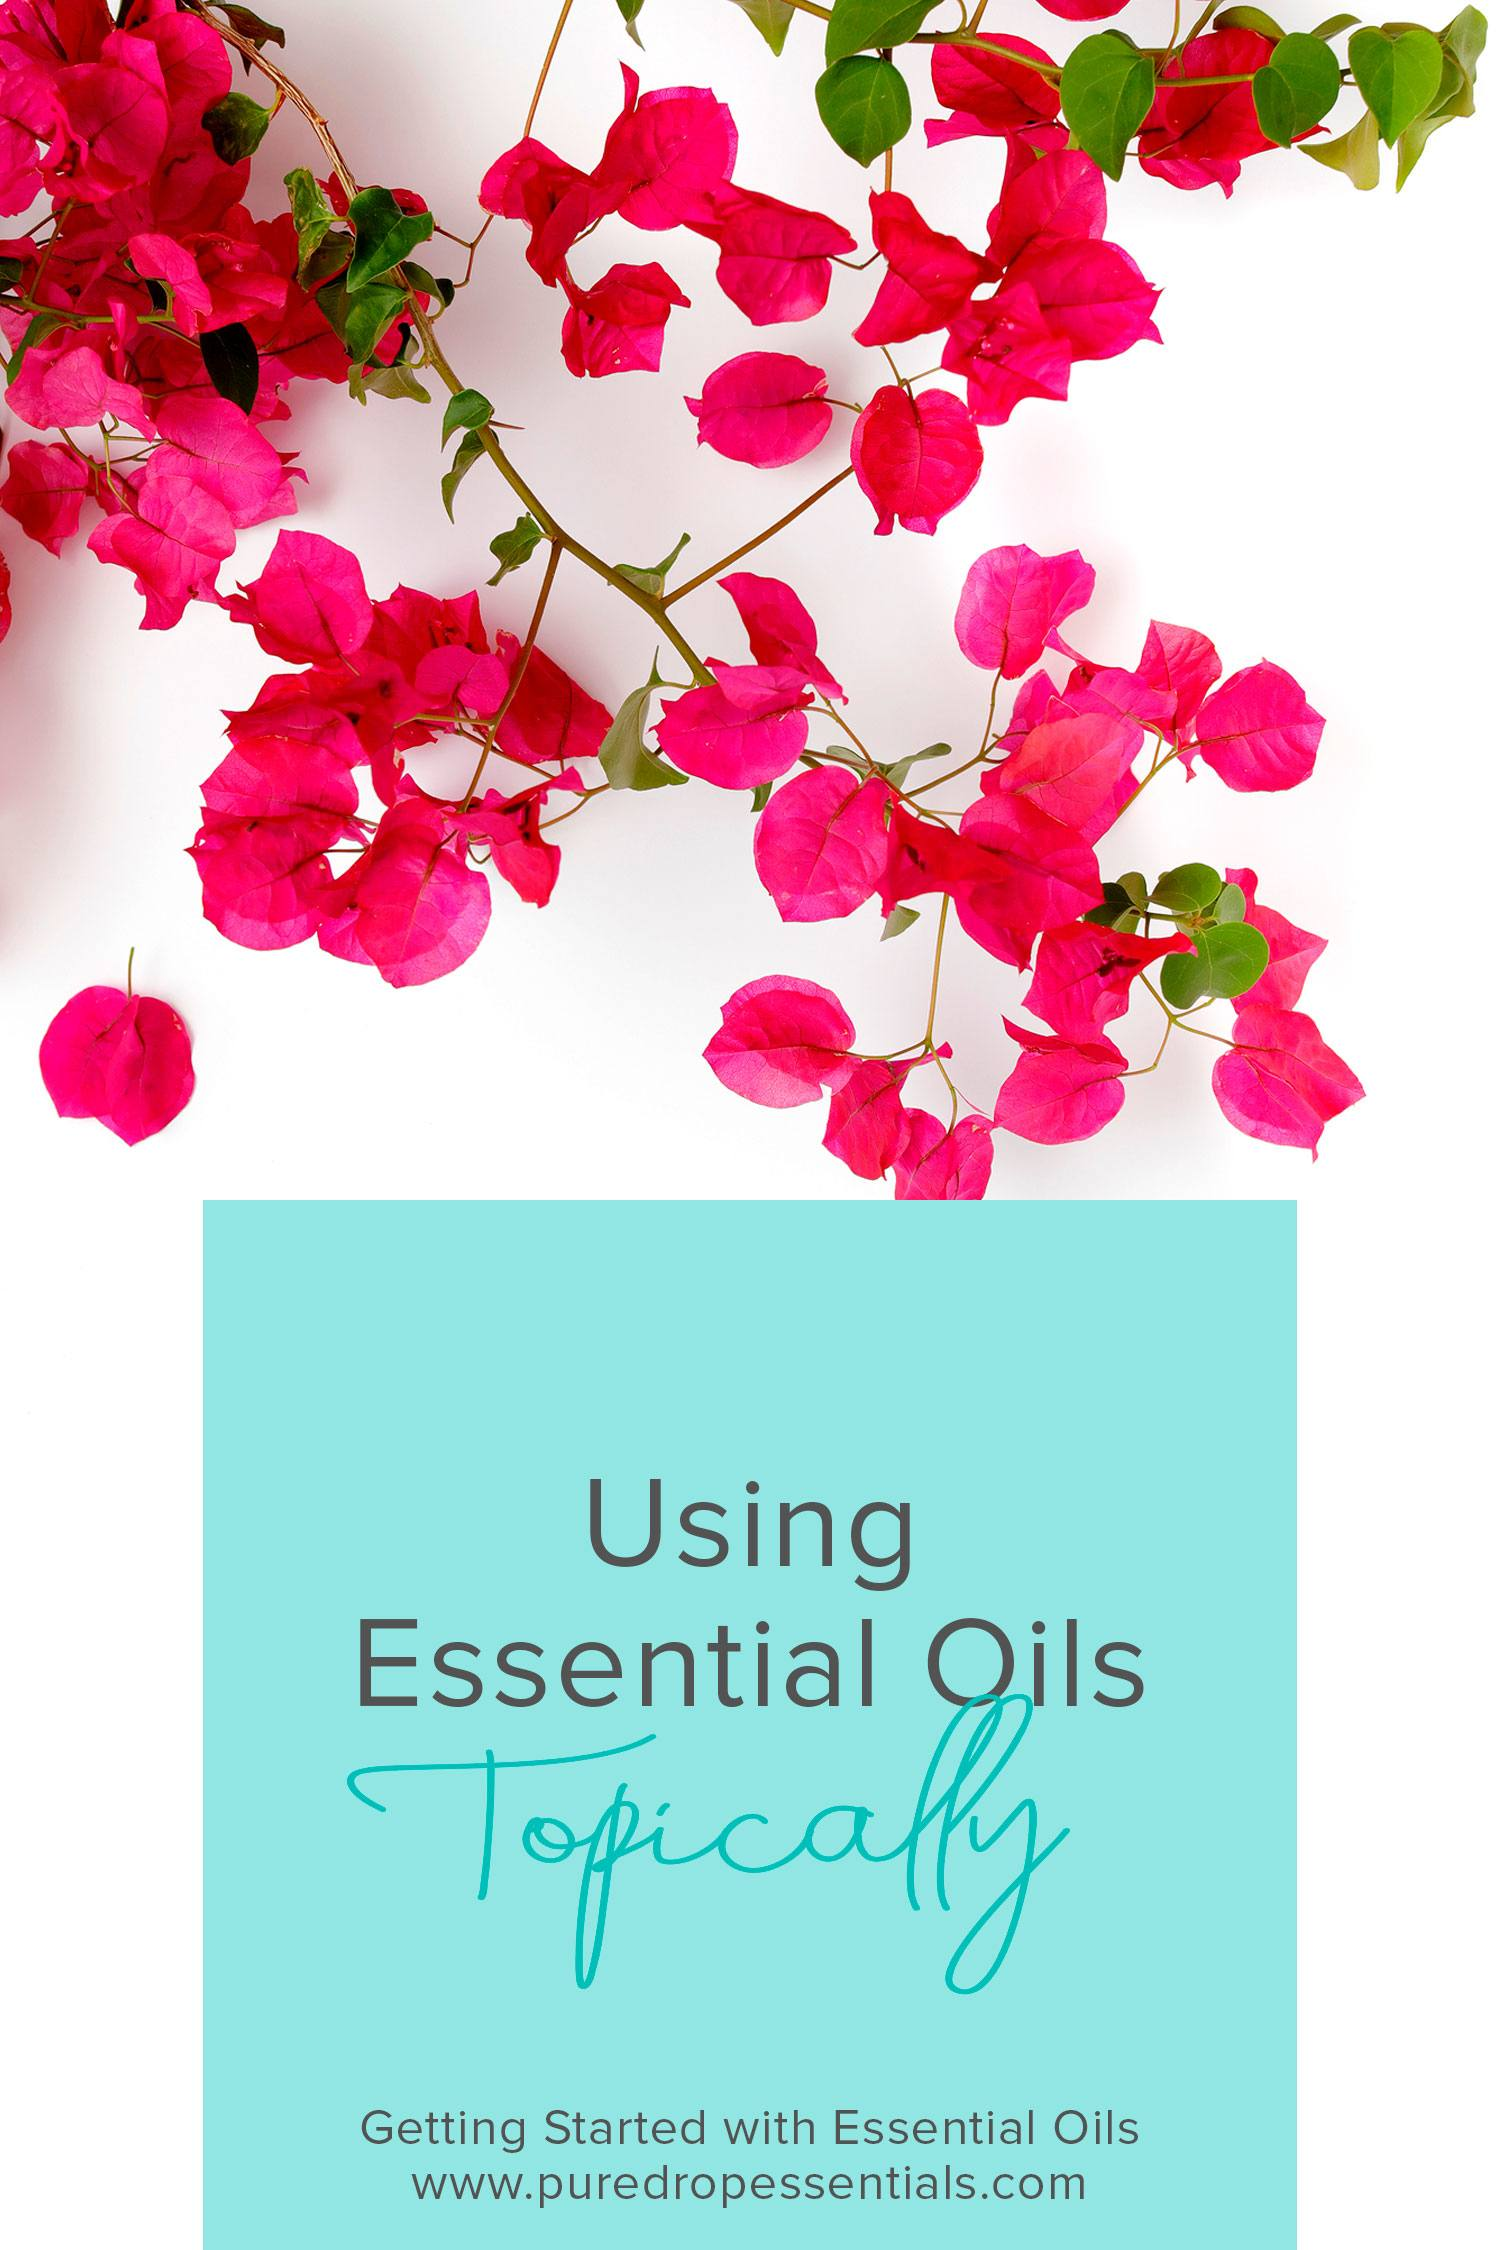 Applying essential oils to your skin can be a safe and effective way to experience the benefits of essential oils. This allows you to experience the aromatic benefits of the essential oils, along with having a targeted effect on the area it has been applied to. Click through to find out more about using essential oils topically to support your body ! www.puredropessentials.com